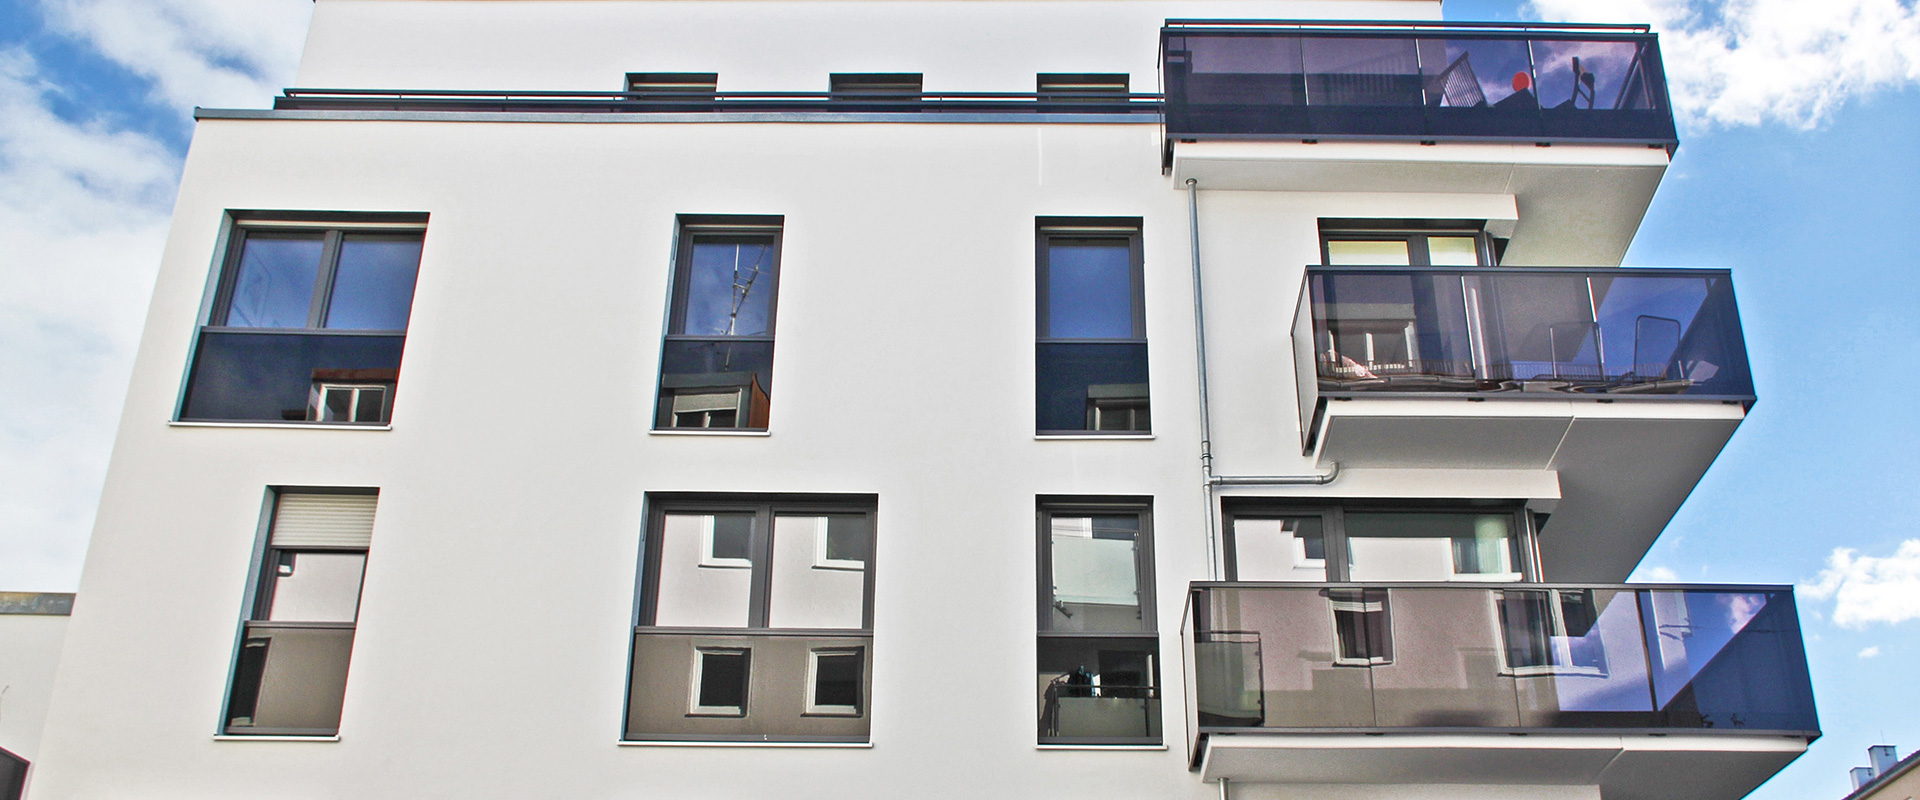 SP14. Condominiums in Munich - Schwabing